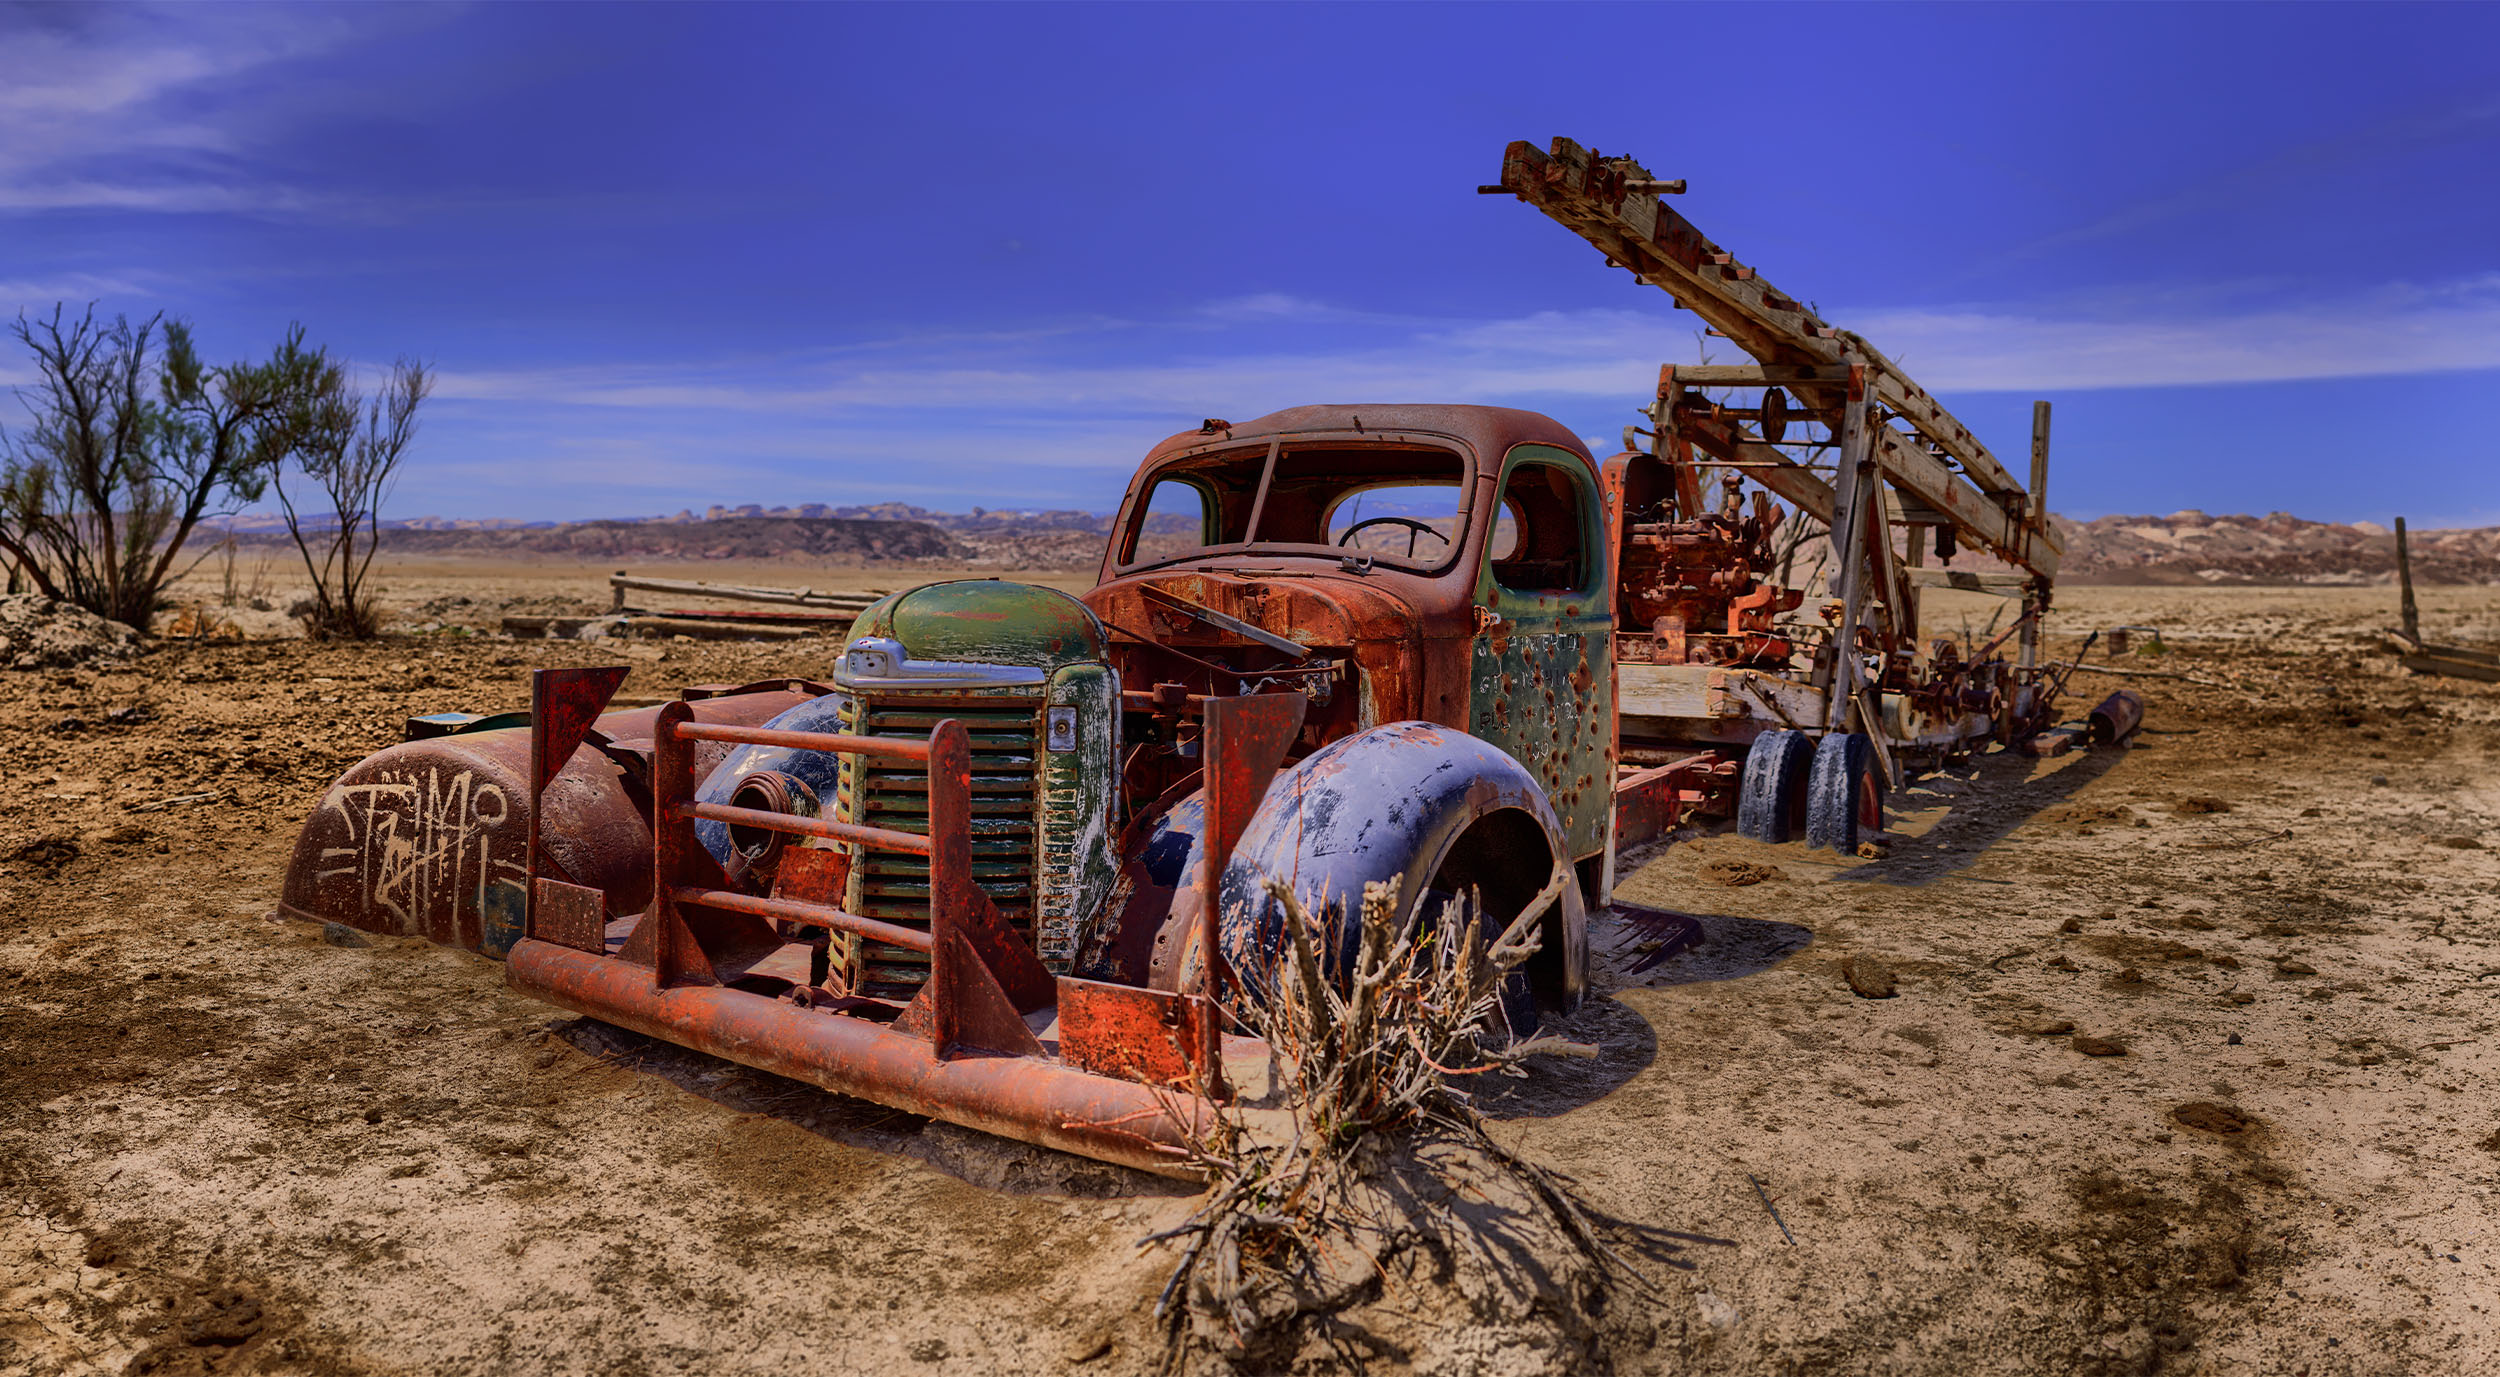 Rusted Truck #3